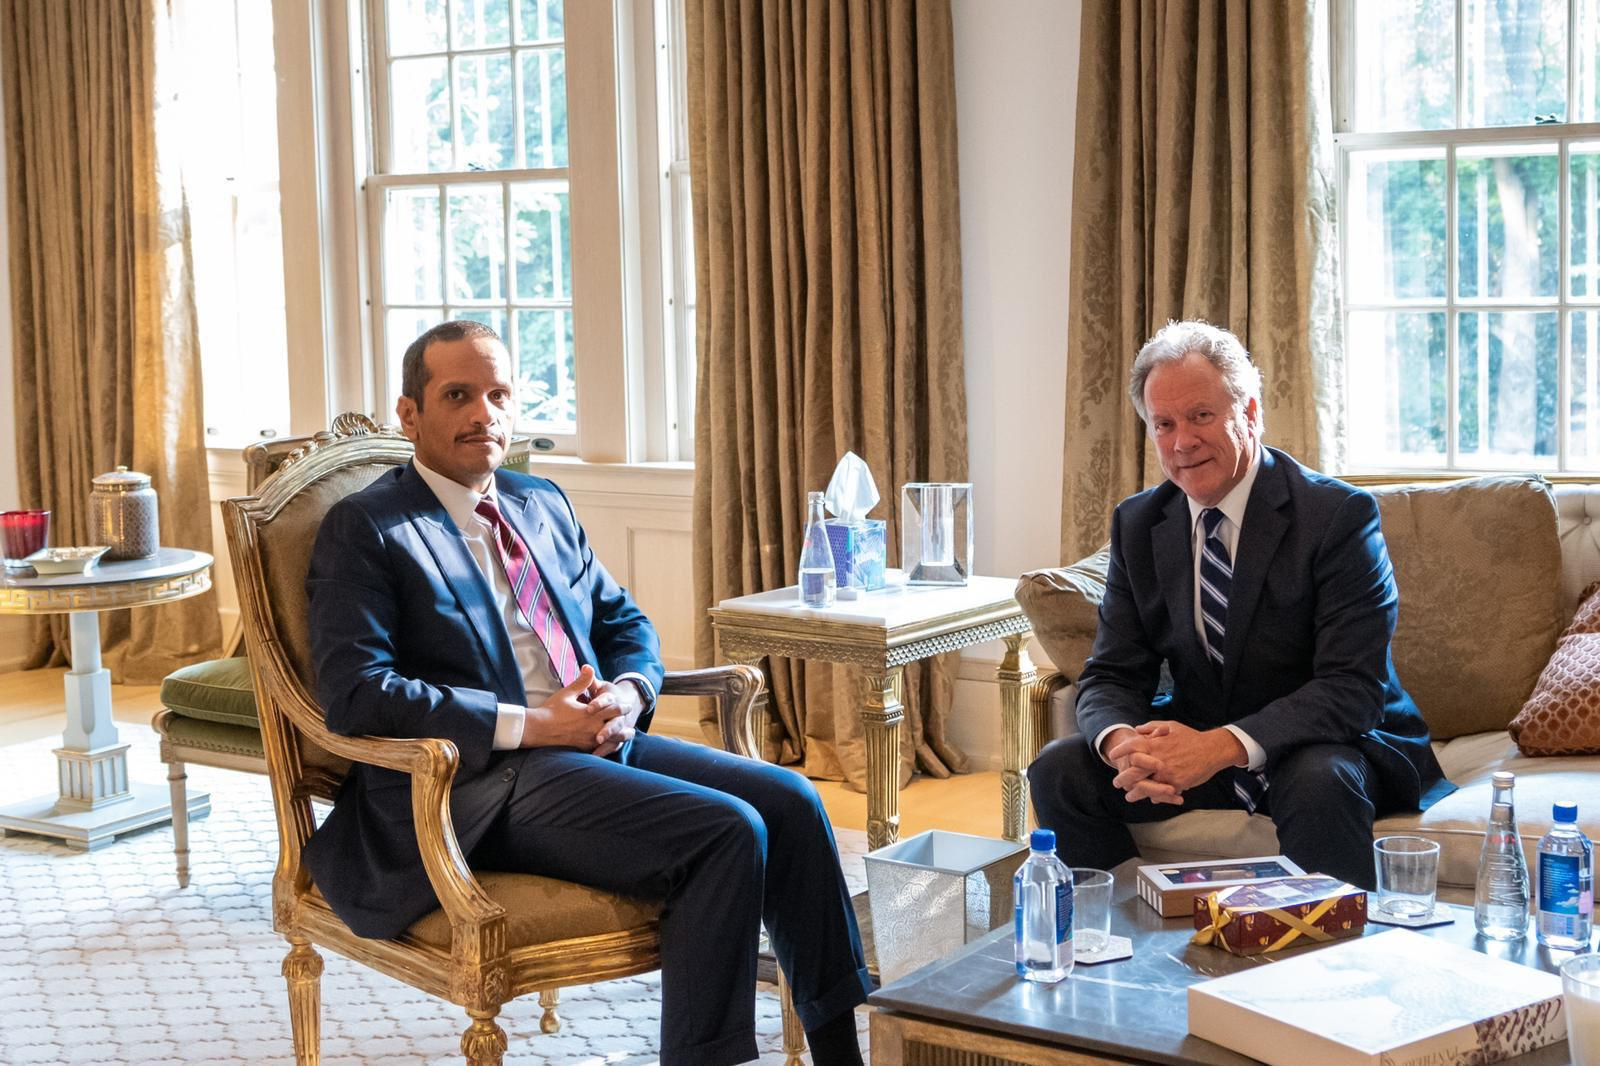 Deputy Prime Minister and Minister of Foreign Affairs Meets Executive Director of World Food Programme